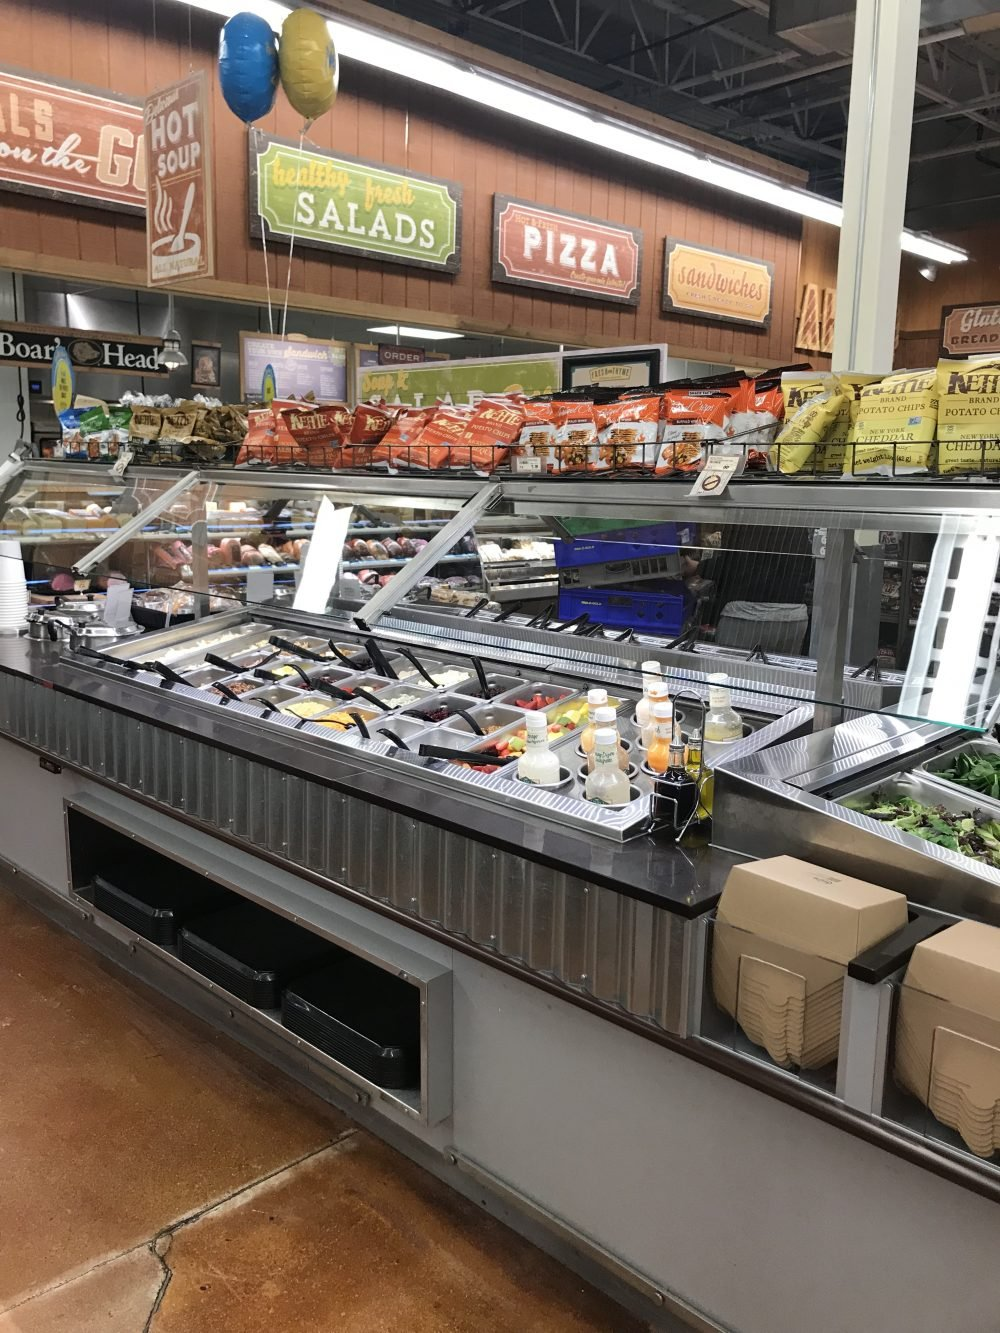 Salad bar in a grocery store